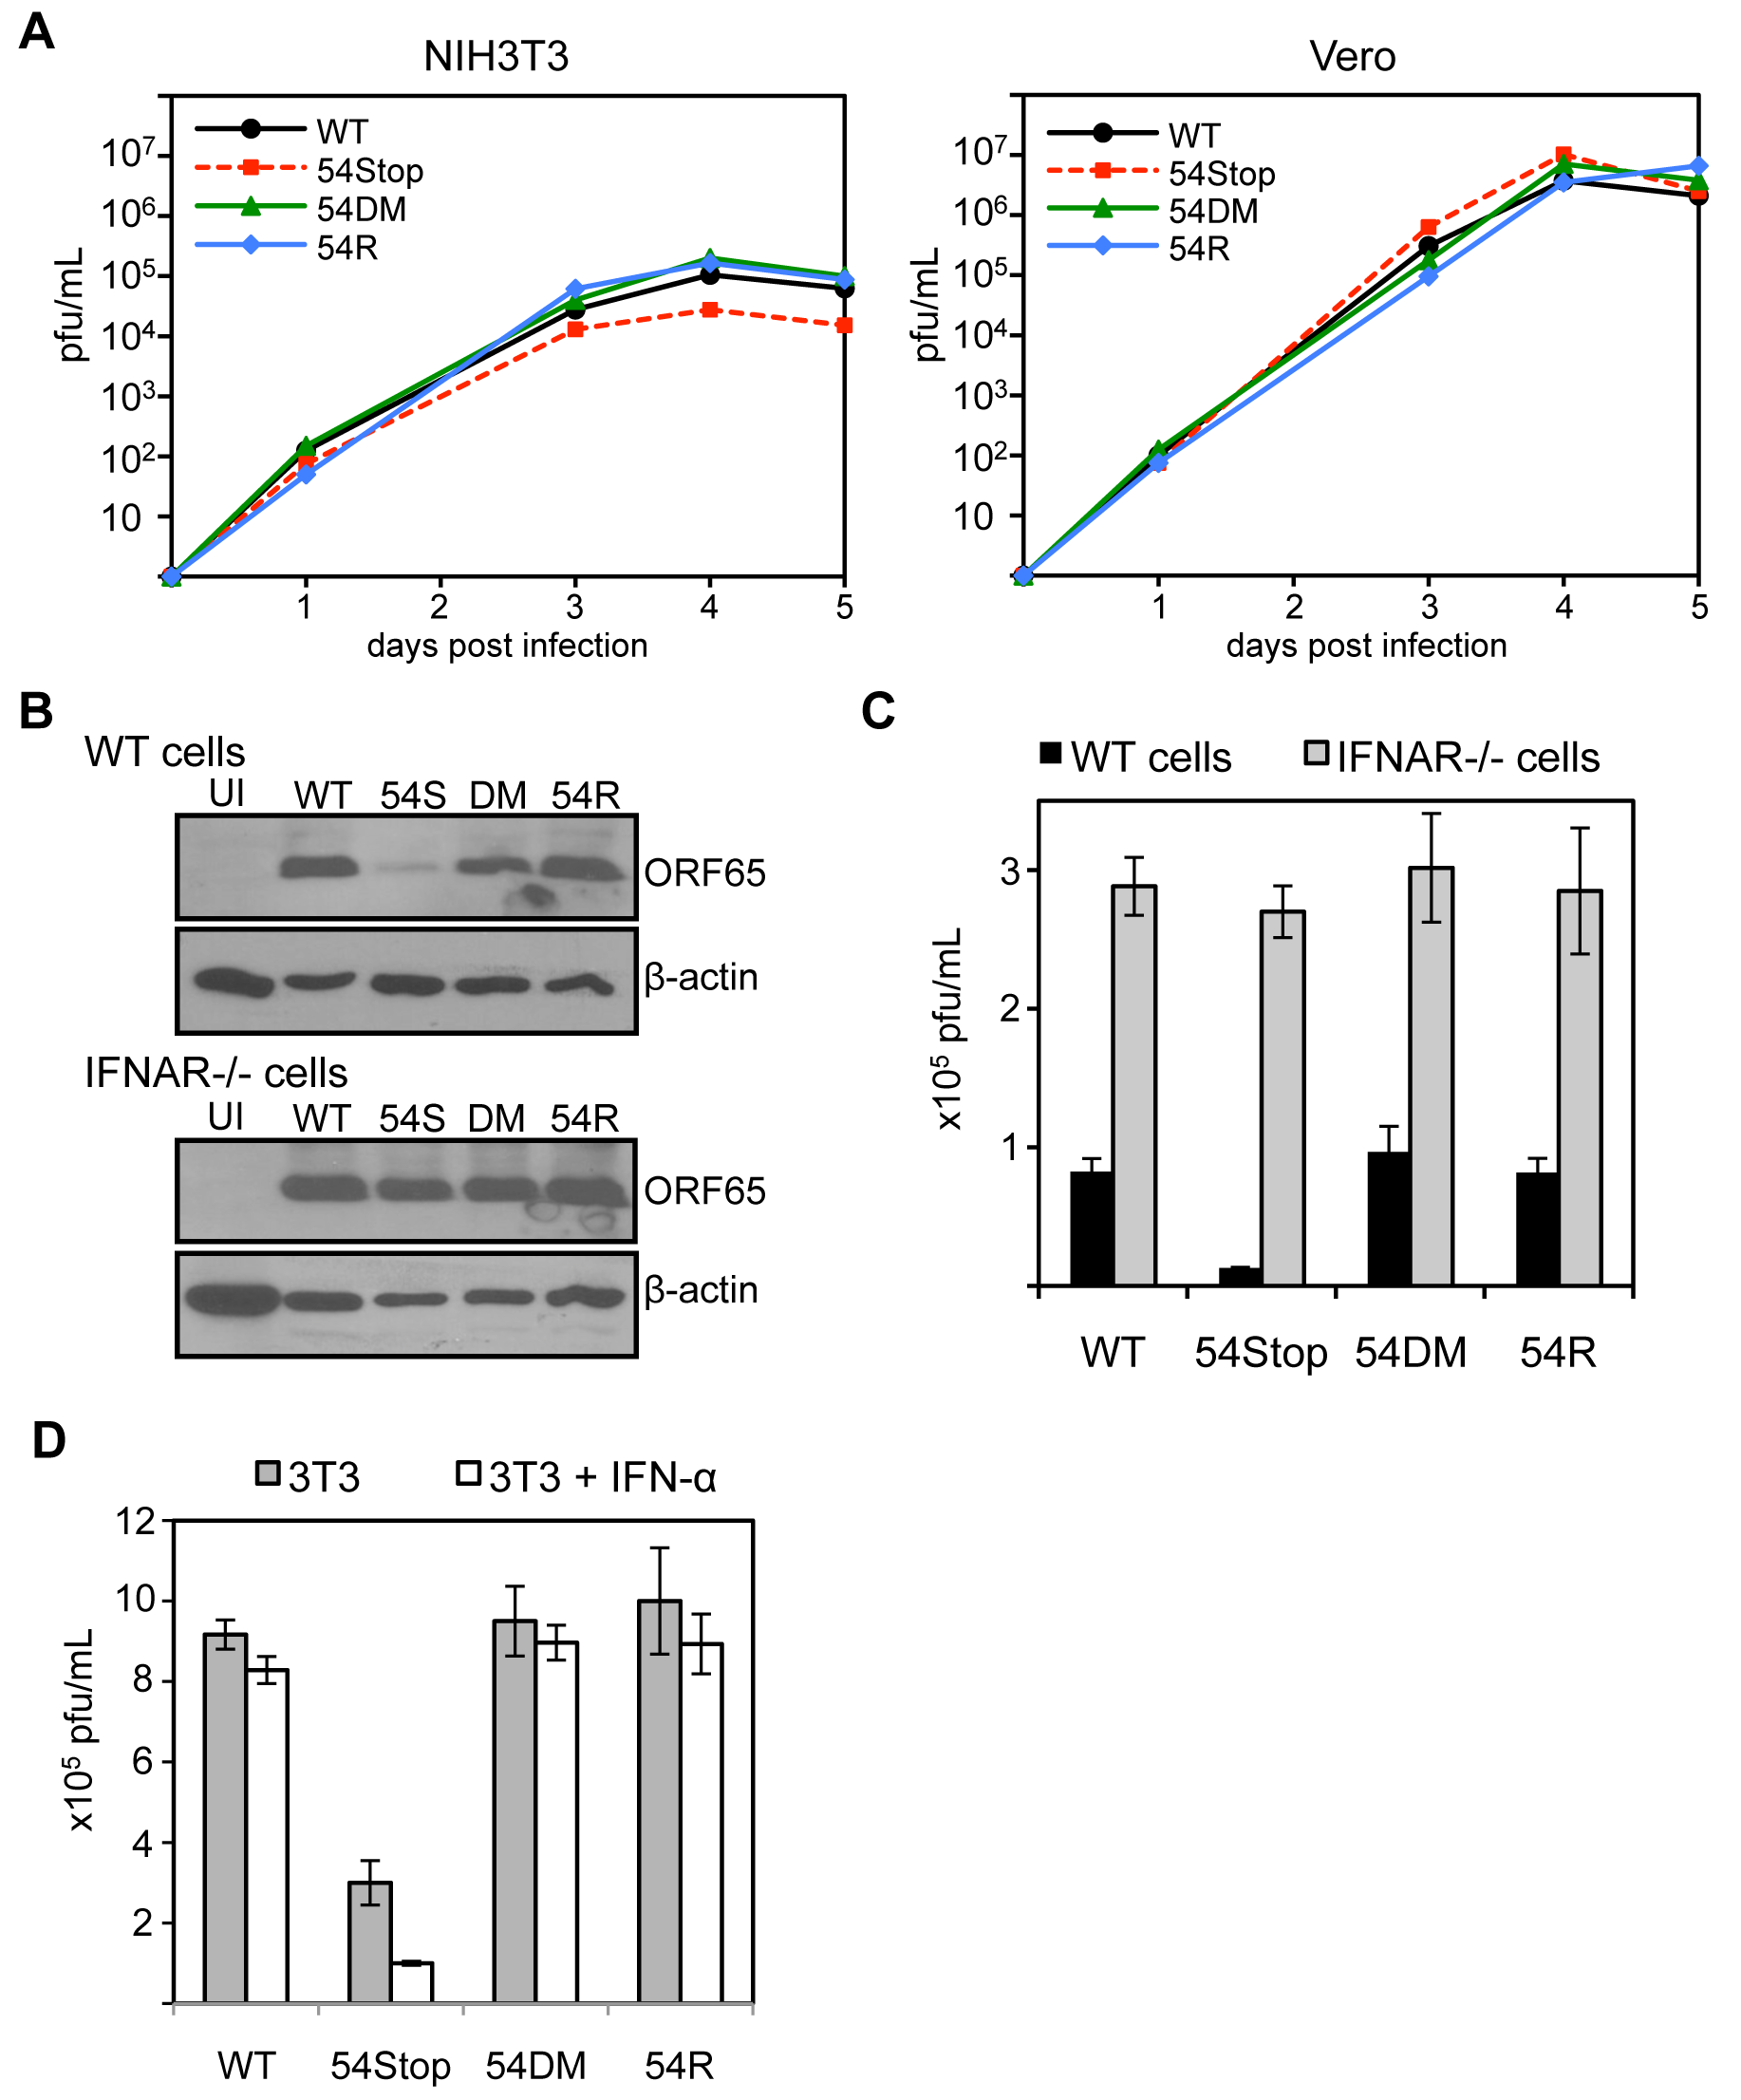 ORF54-null virus has a moderate defect in the presence of type I IFN signaling.